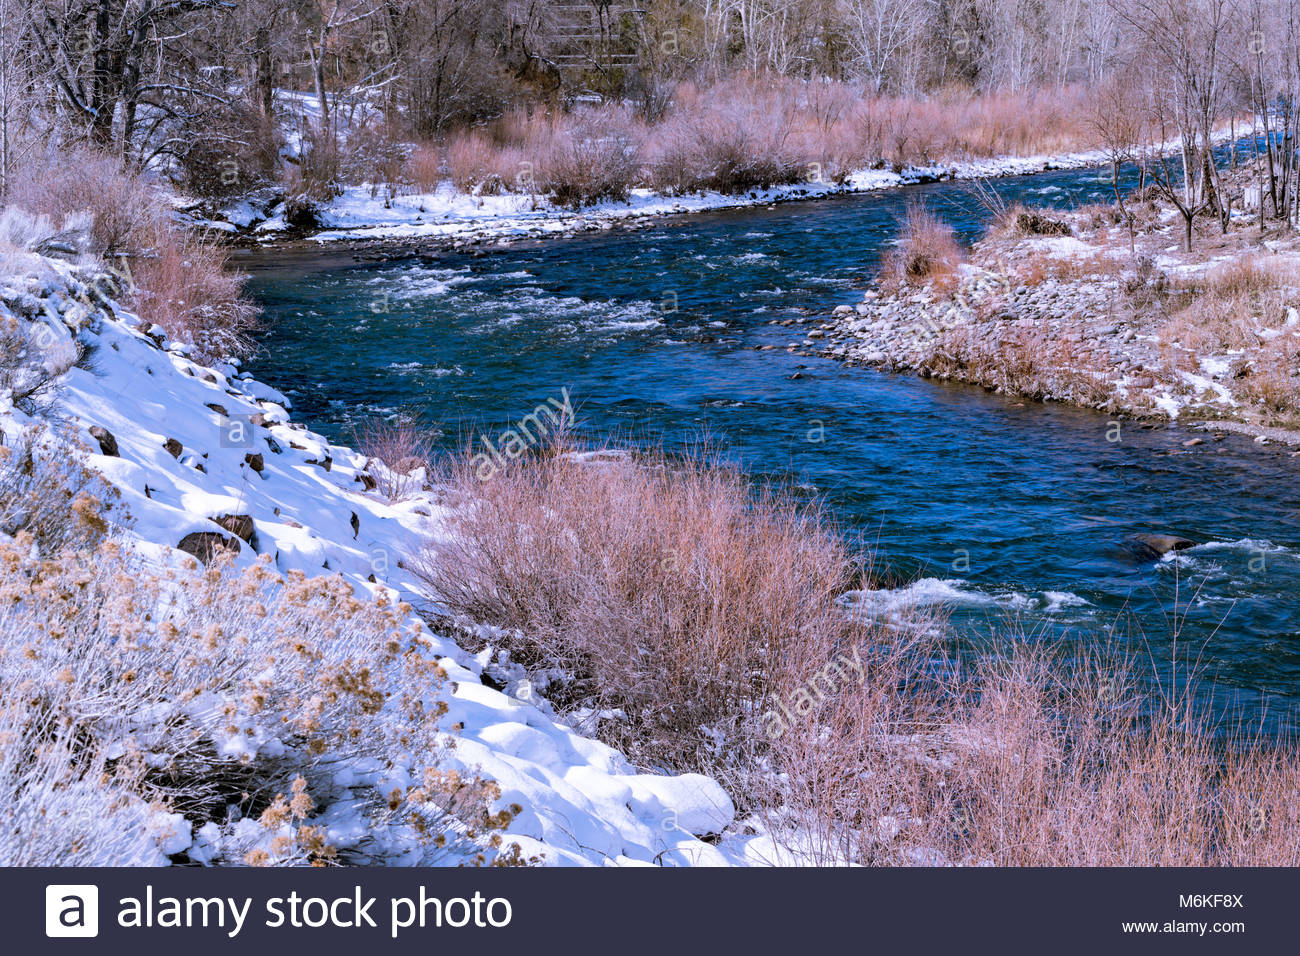 Snowy banks along the Truckee River in Northern Nevada near Idlewild park. - Stock Image